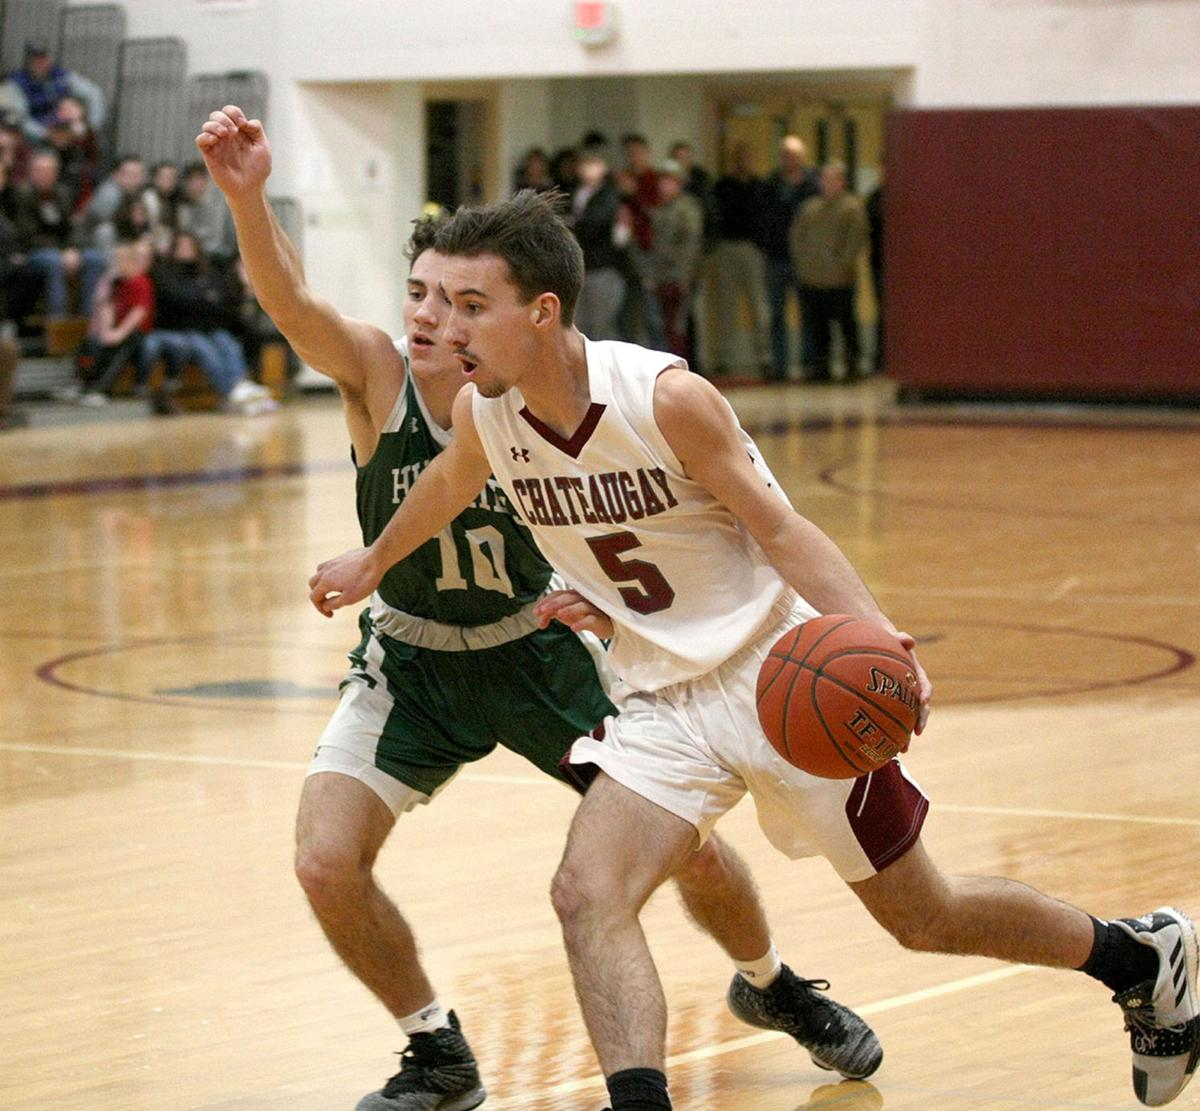 Chateaugay senior McDonald named Class D Player of the Year